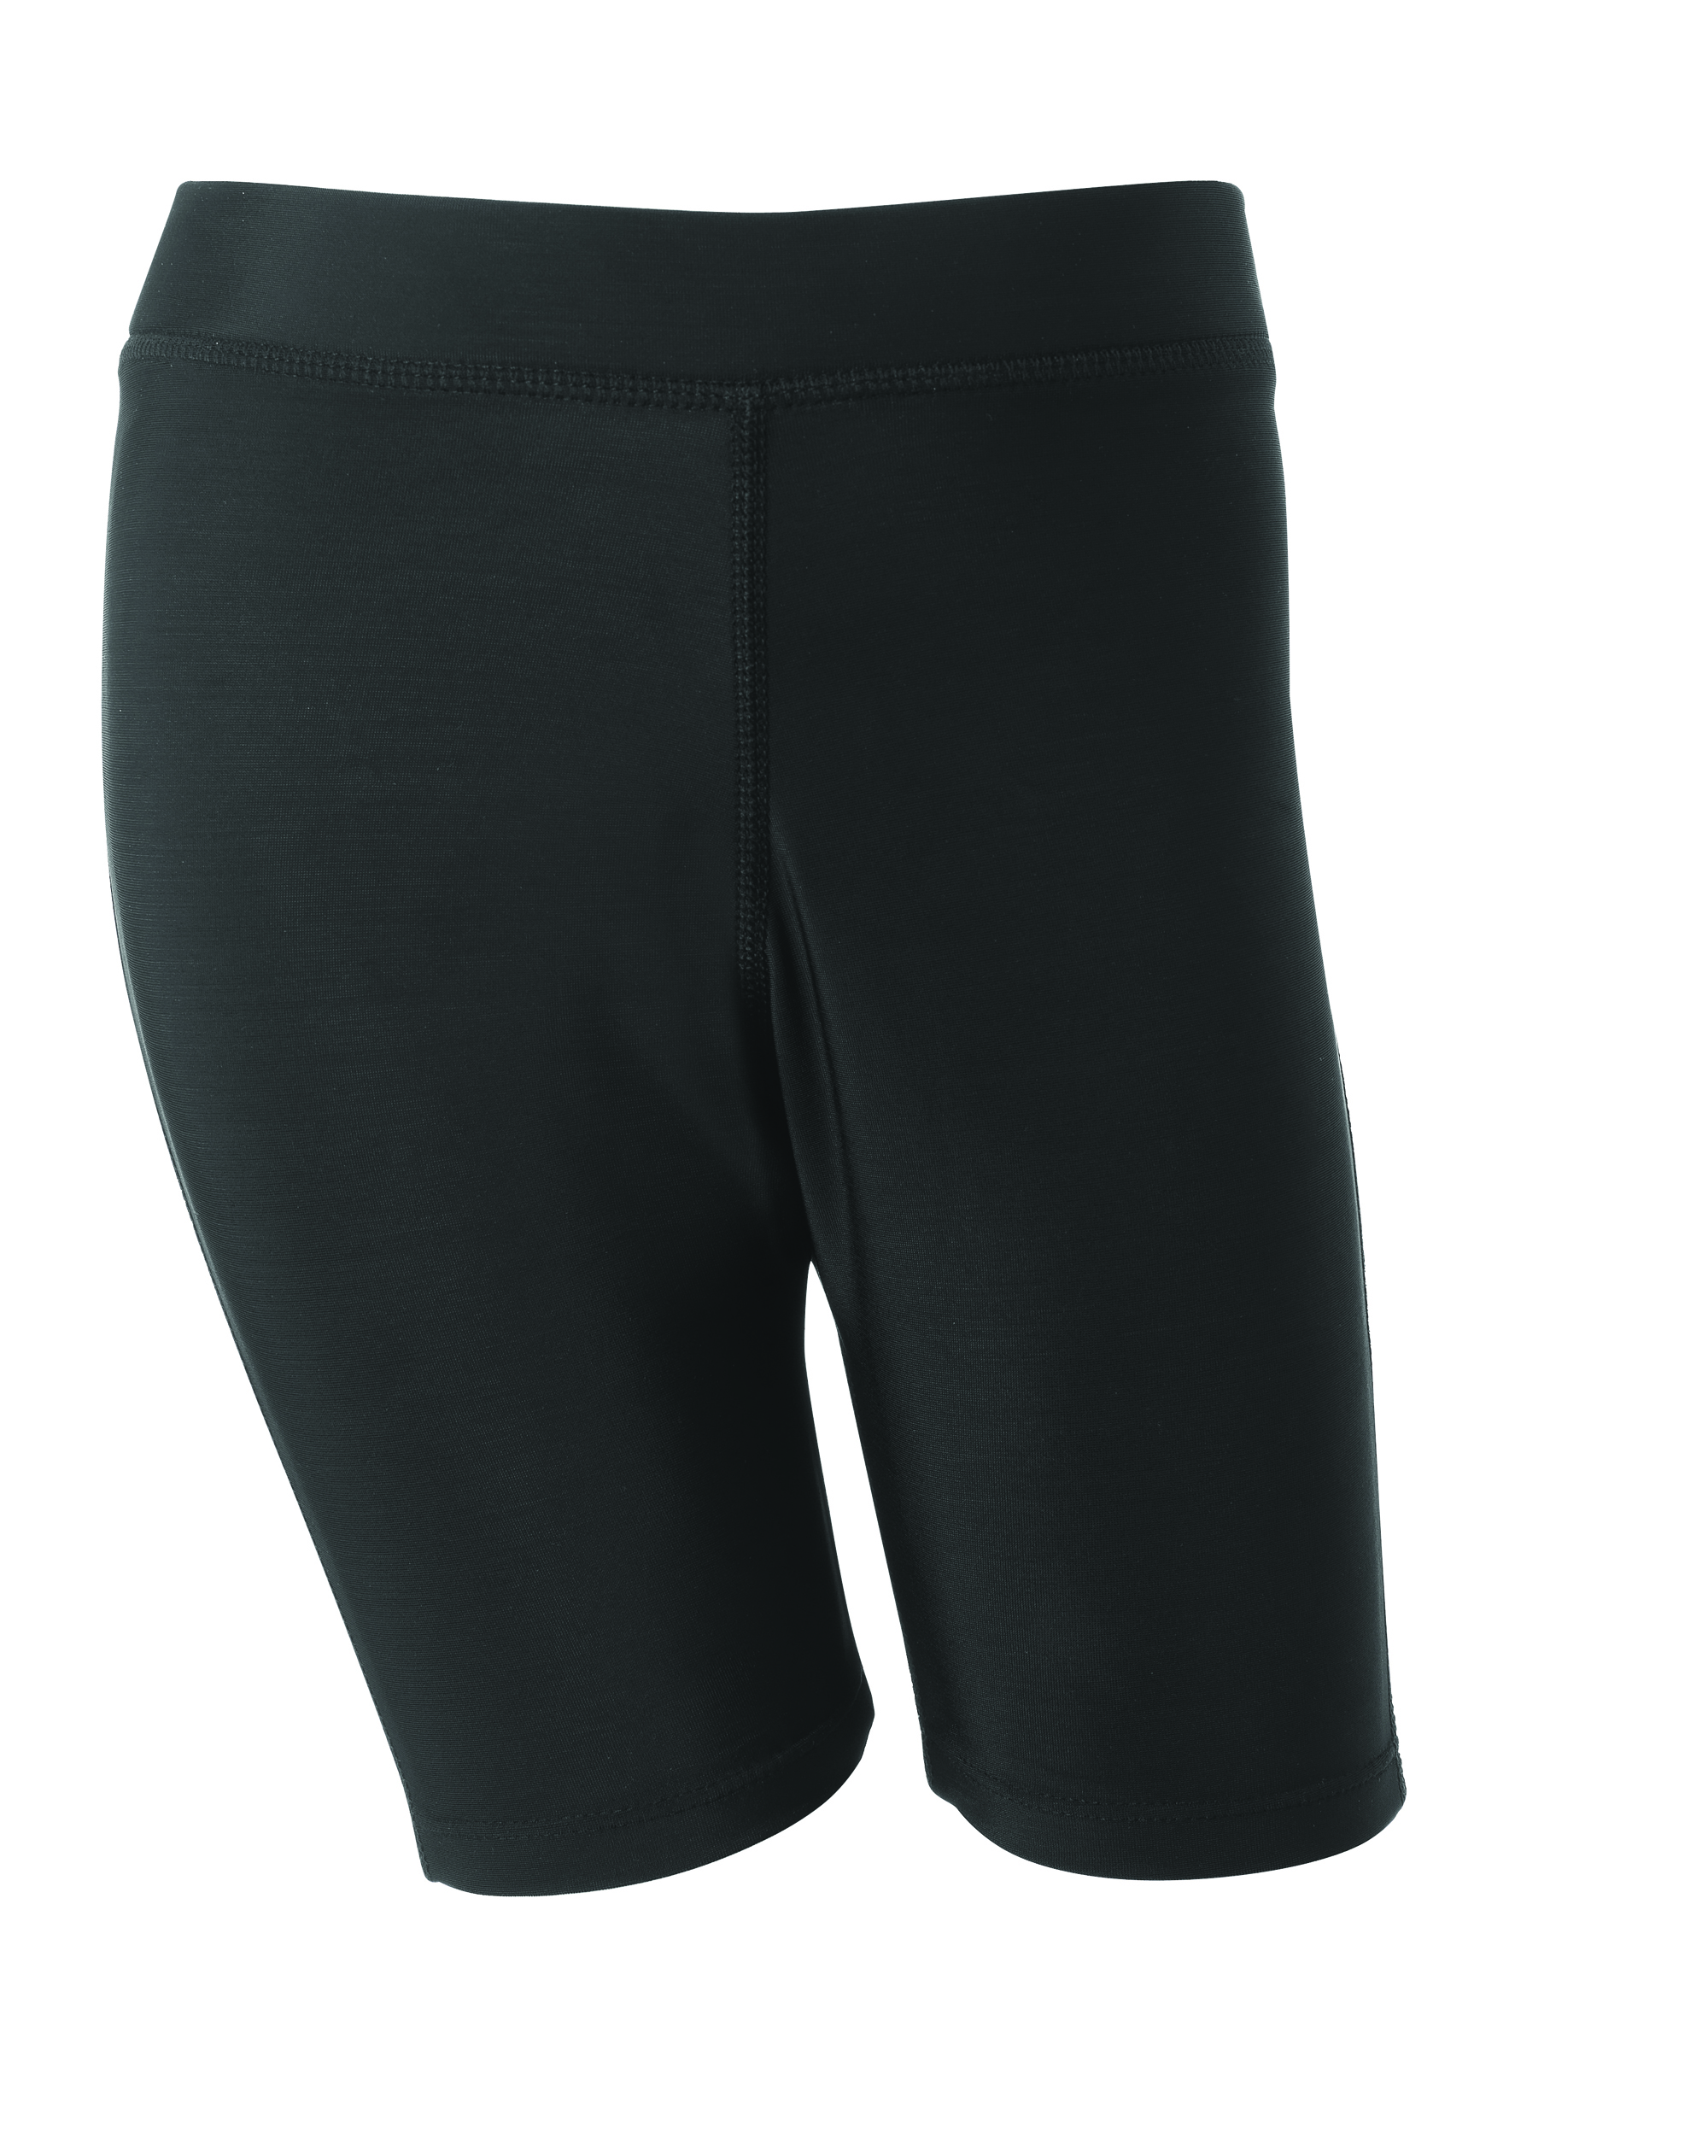 Kids Response Base Layer Shorts